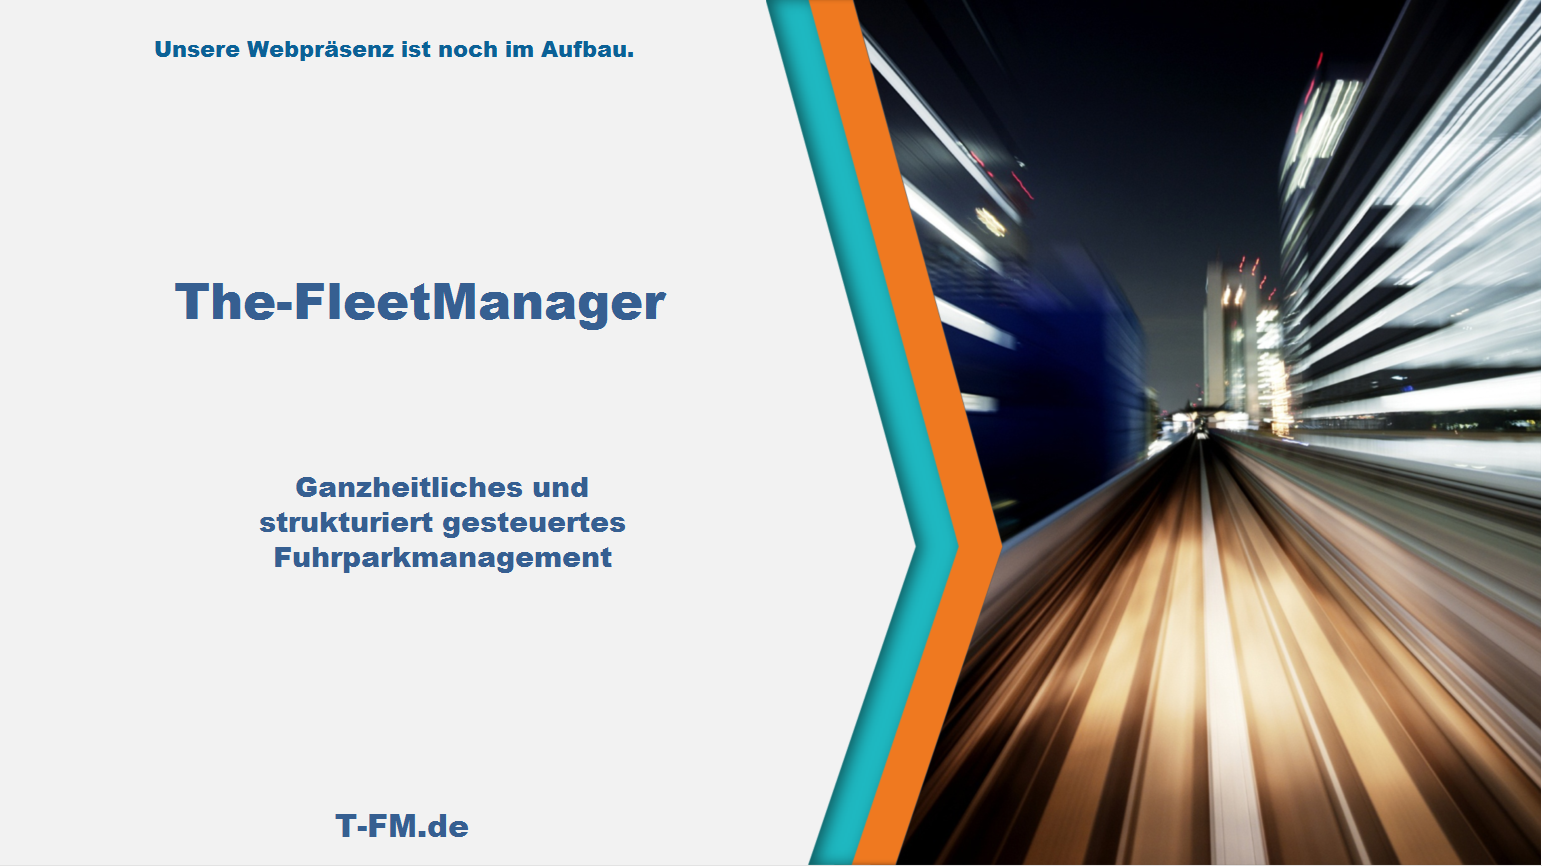 The-FleetManager